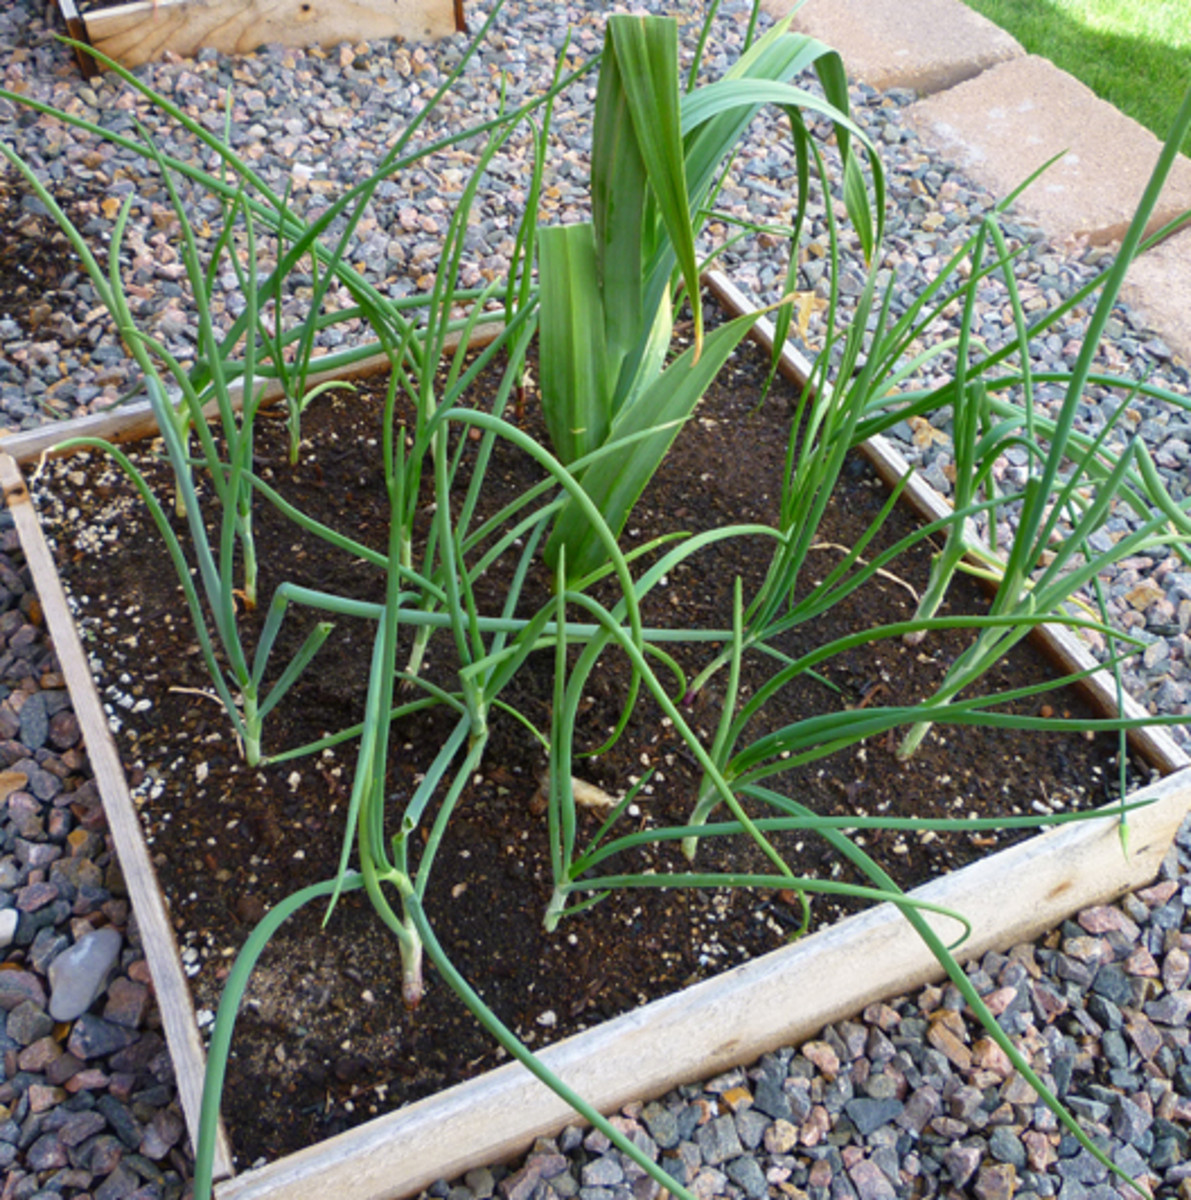 Yellow rock onions. Elephant Garlic is in the middle.